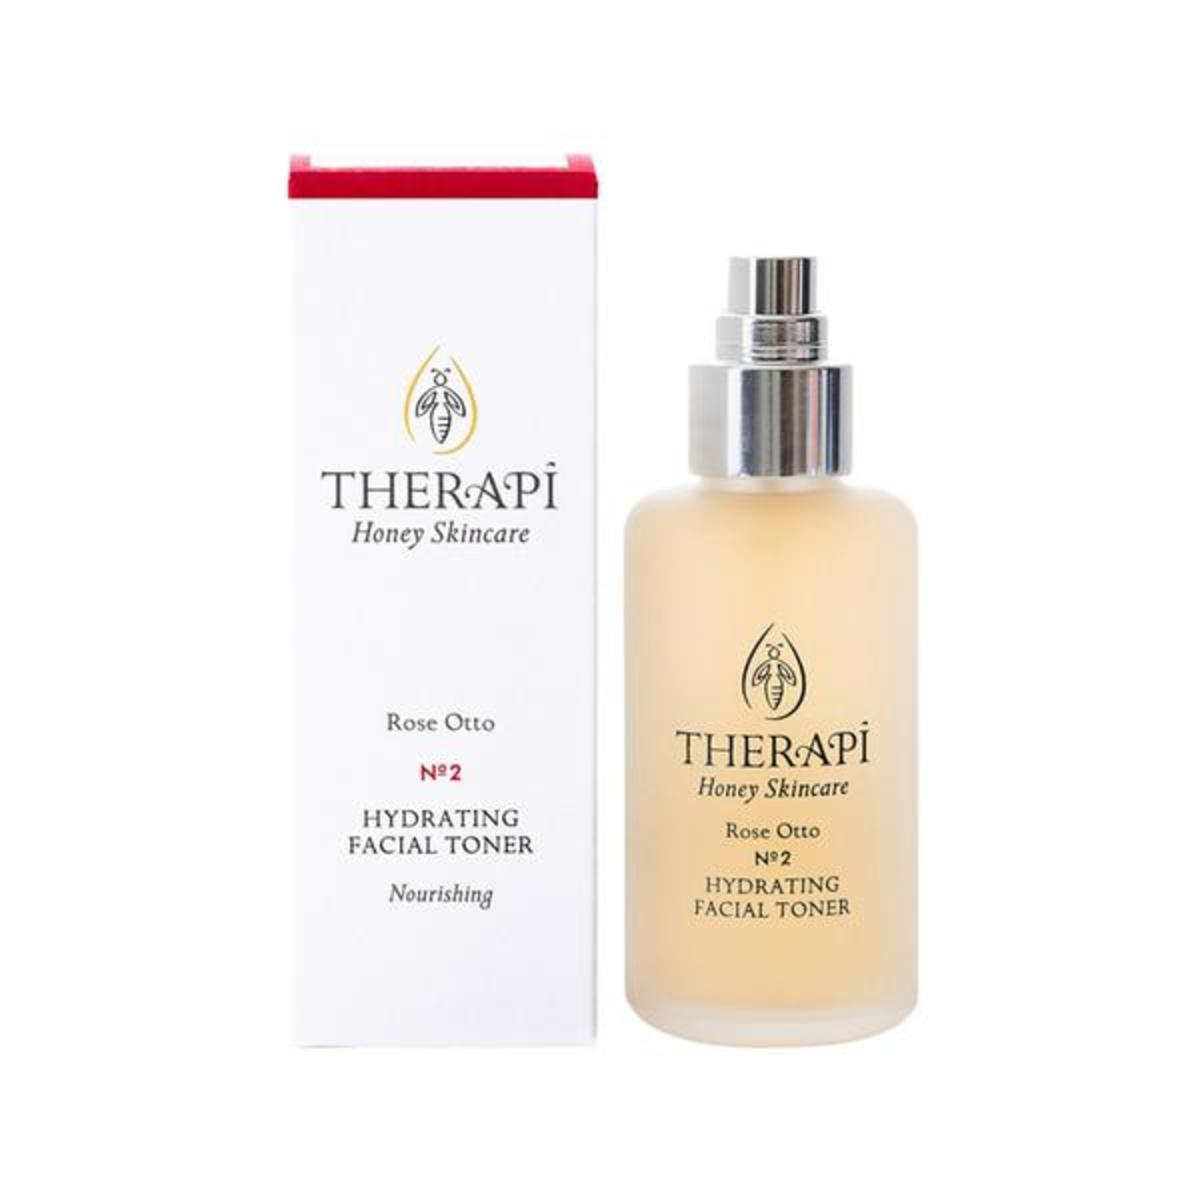 therapi_hydrating_facial_toner_rose_otto_at_credo_beauty_600x